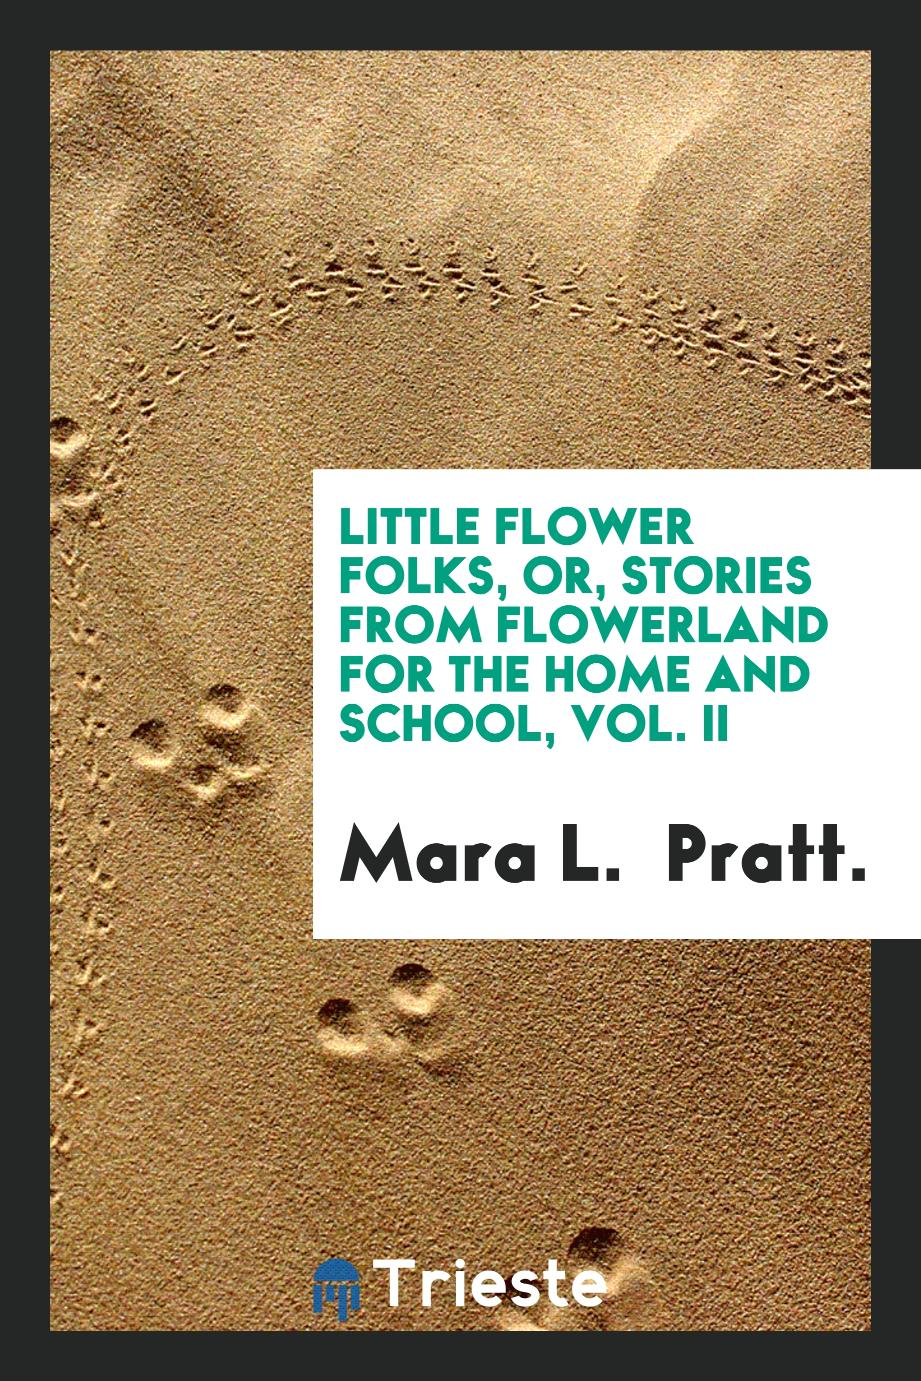 Little Flower Folks, or, Stories from Flowerland for the Home and School, Vol. II